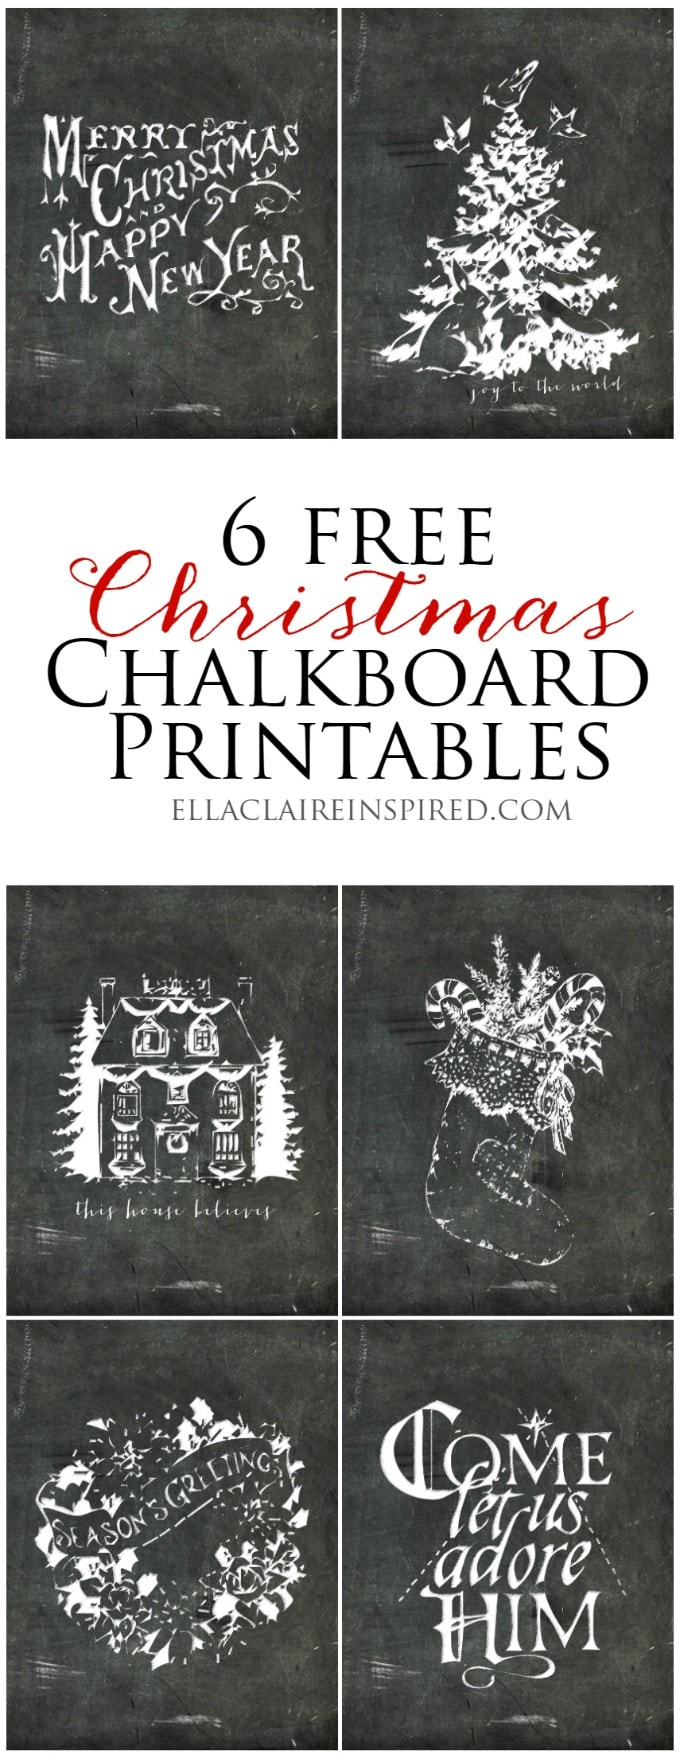 Add vintage charm to your home with these 6 free Christmas chalkboard printables. Get them at ellaclaireinspired.com